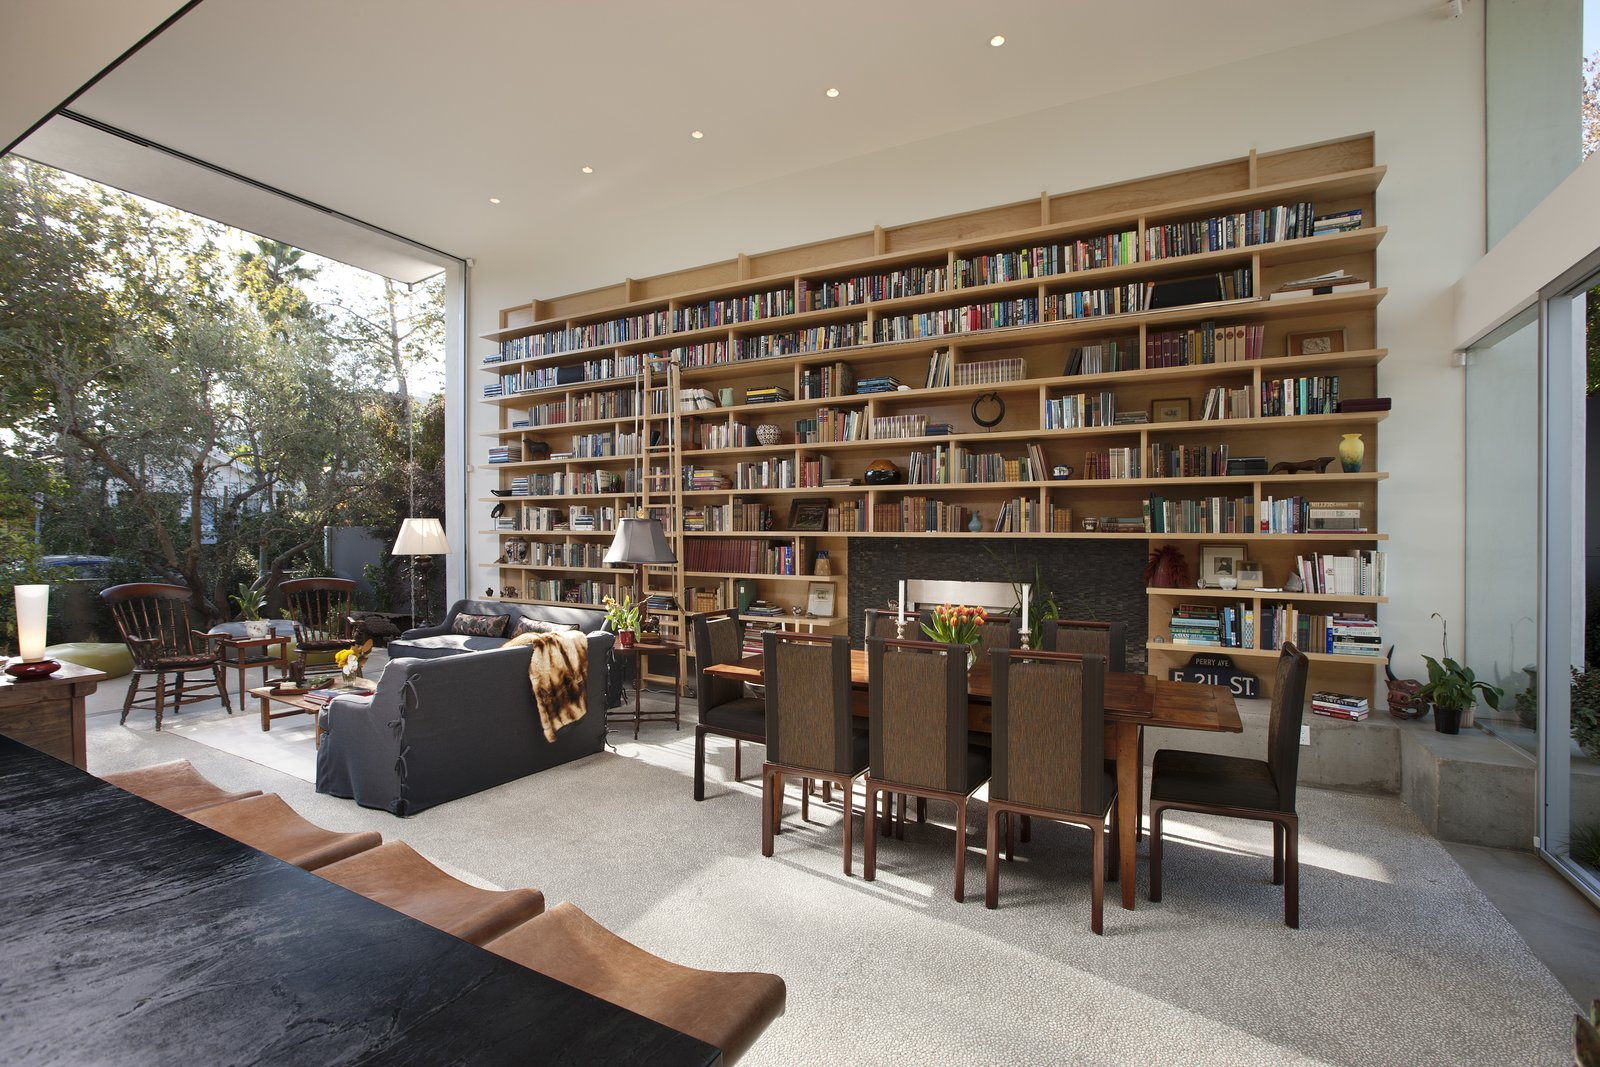 The homeowner possessed a brilliant collection of books, which are showcased in sprawling built-in book shelves in the living room.    Goodman Residence by Abramson Teiger Architects